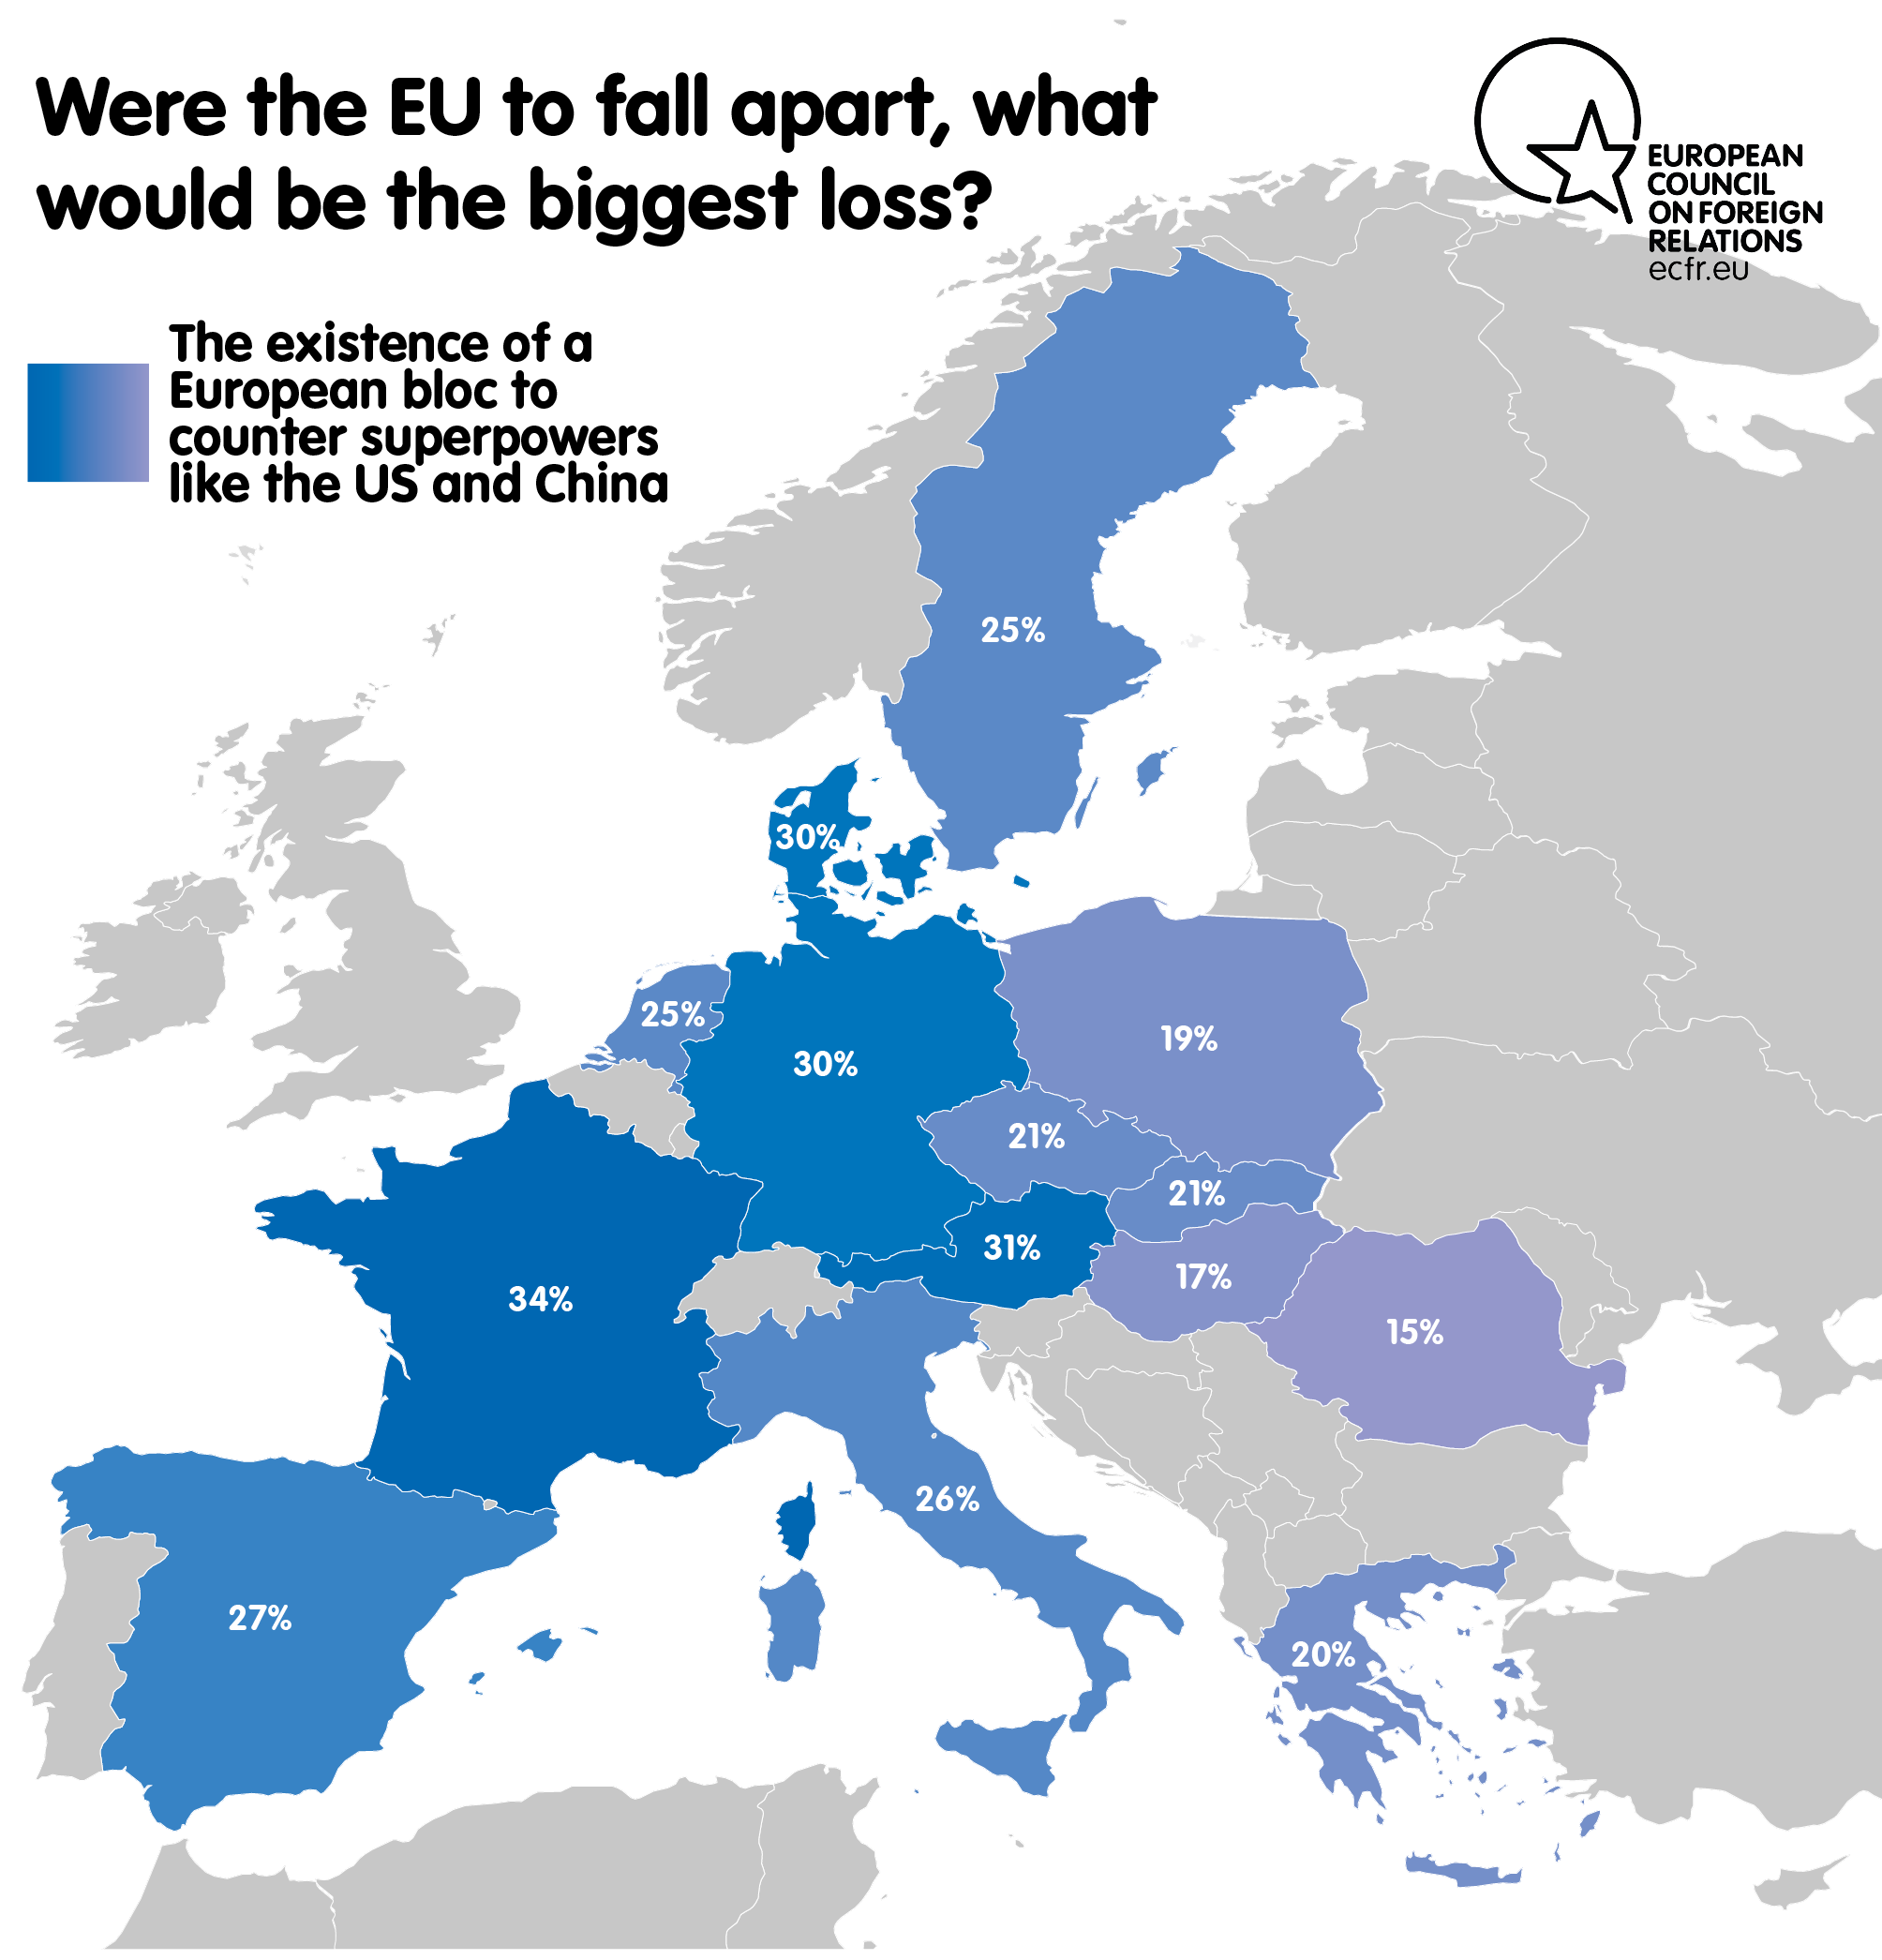 Were the EU to fall apart, what would be the biggest loss?